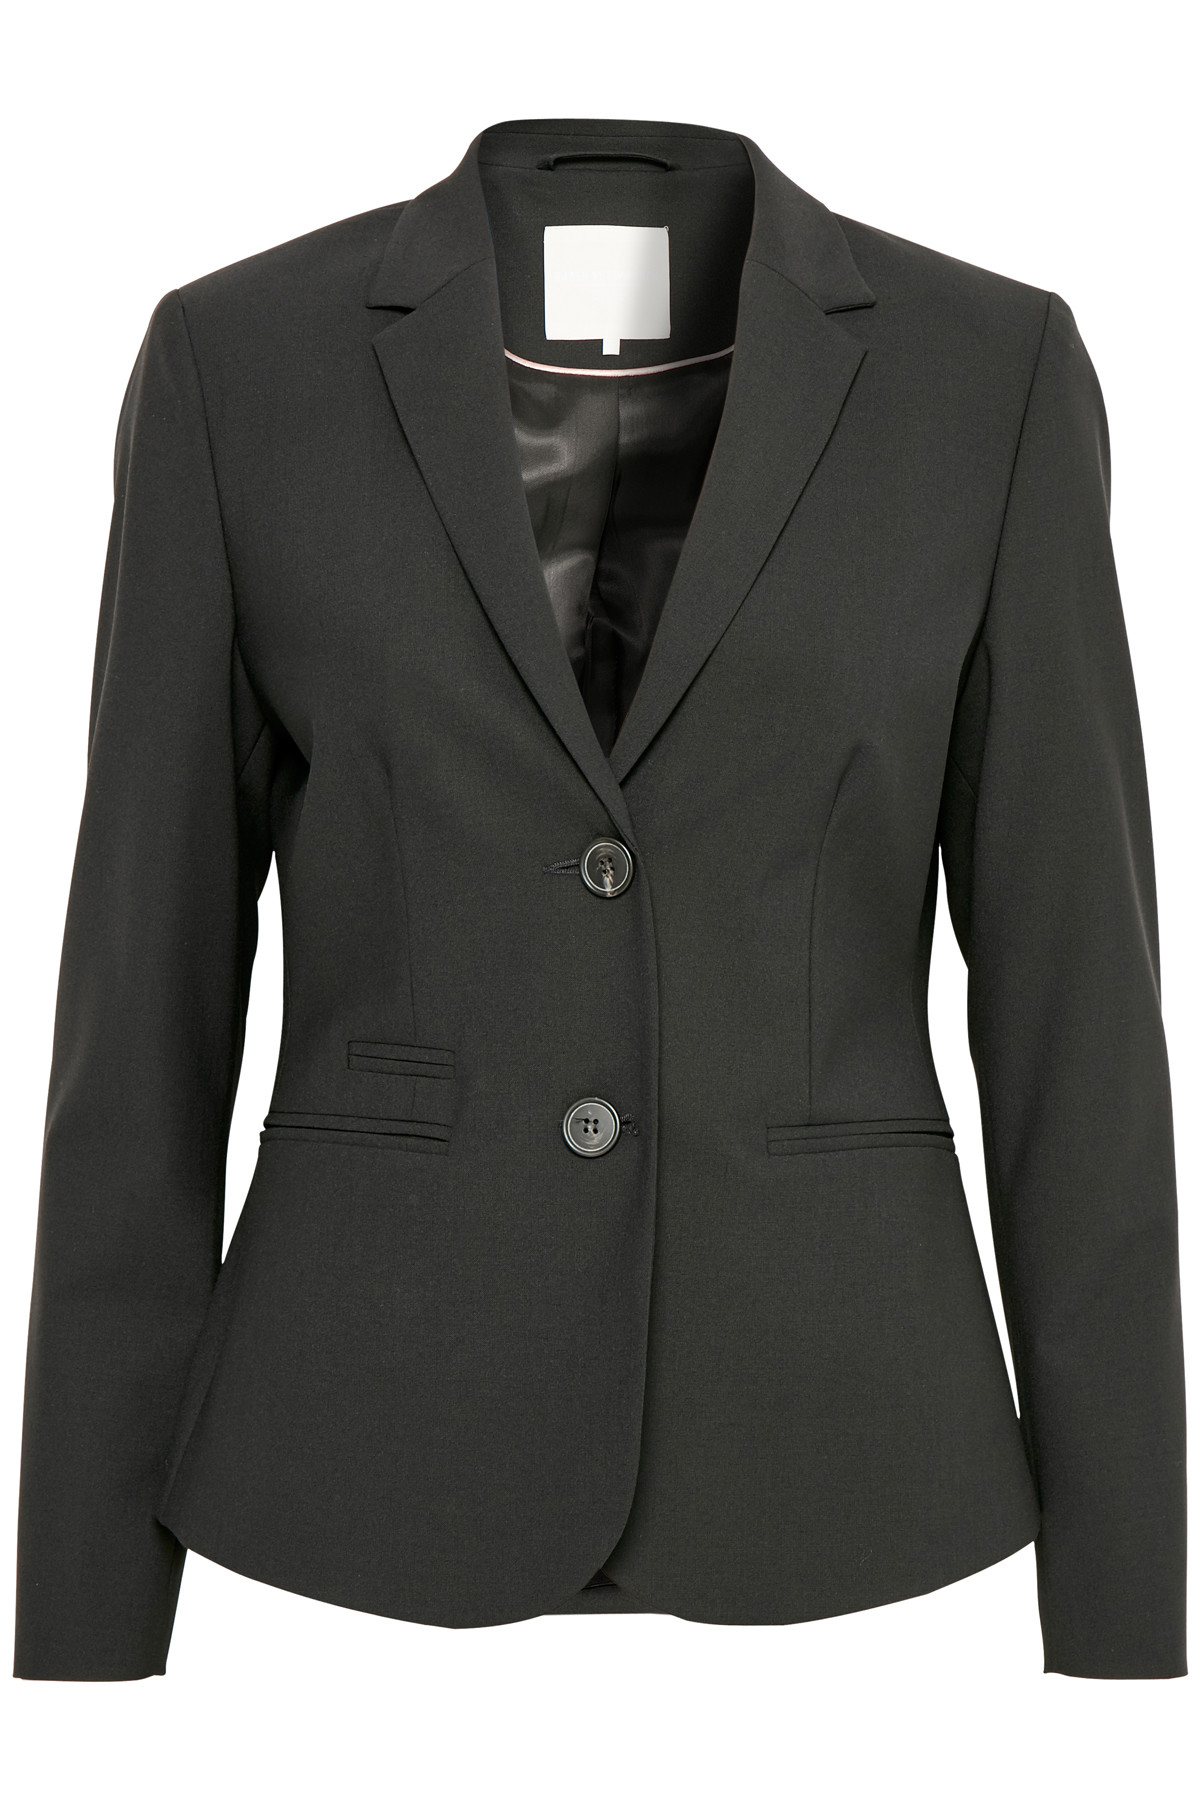 Image of   KAREN BY SIMONSEN SYDNEY BLAZER 10102001 (Black 40999, 42)